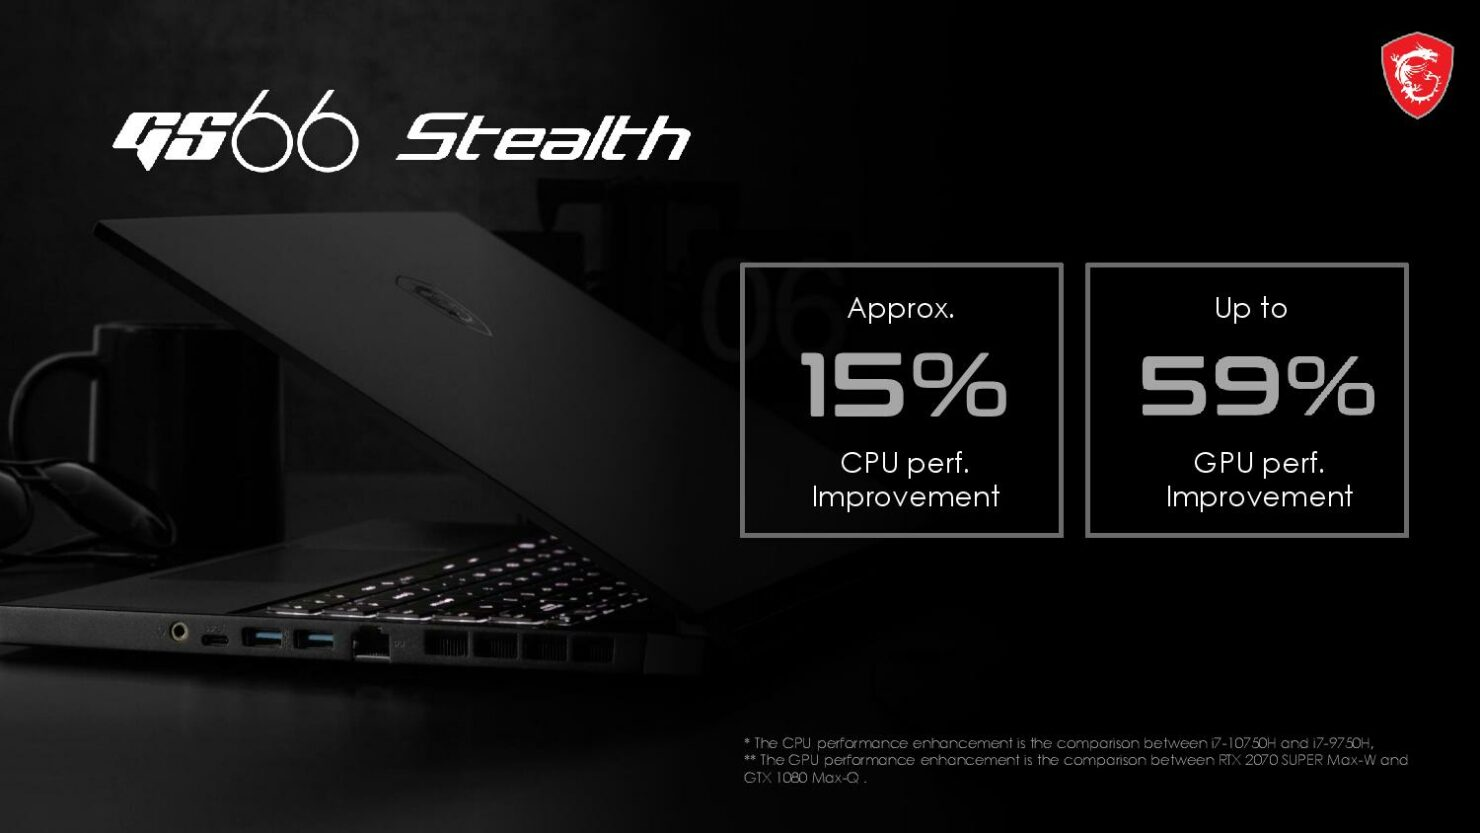 msi-gs66-stealth-product-information-page-008-2